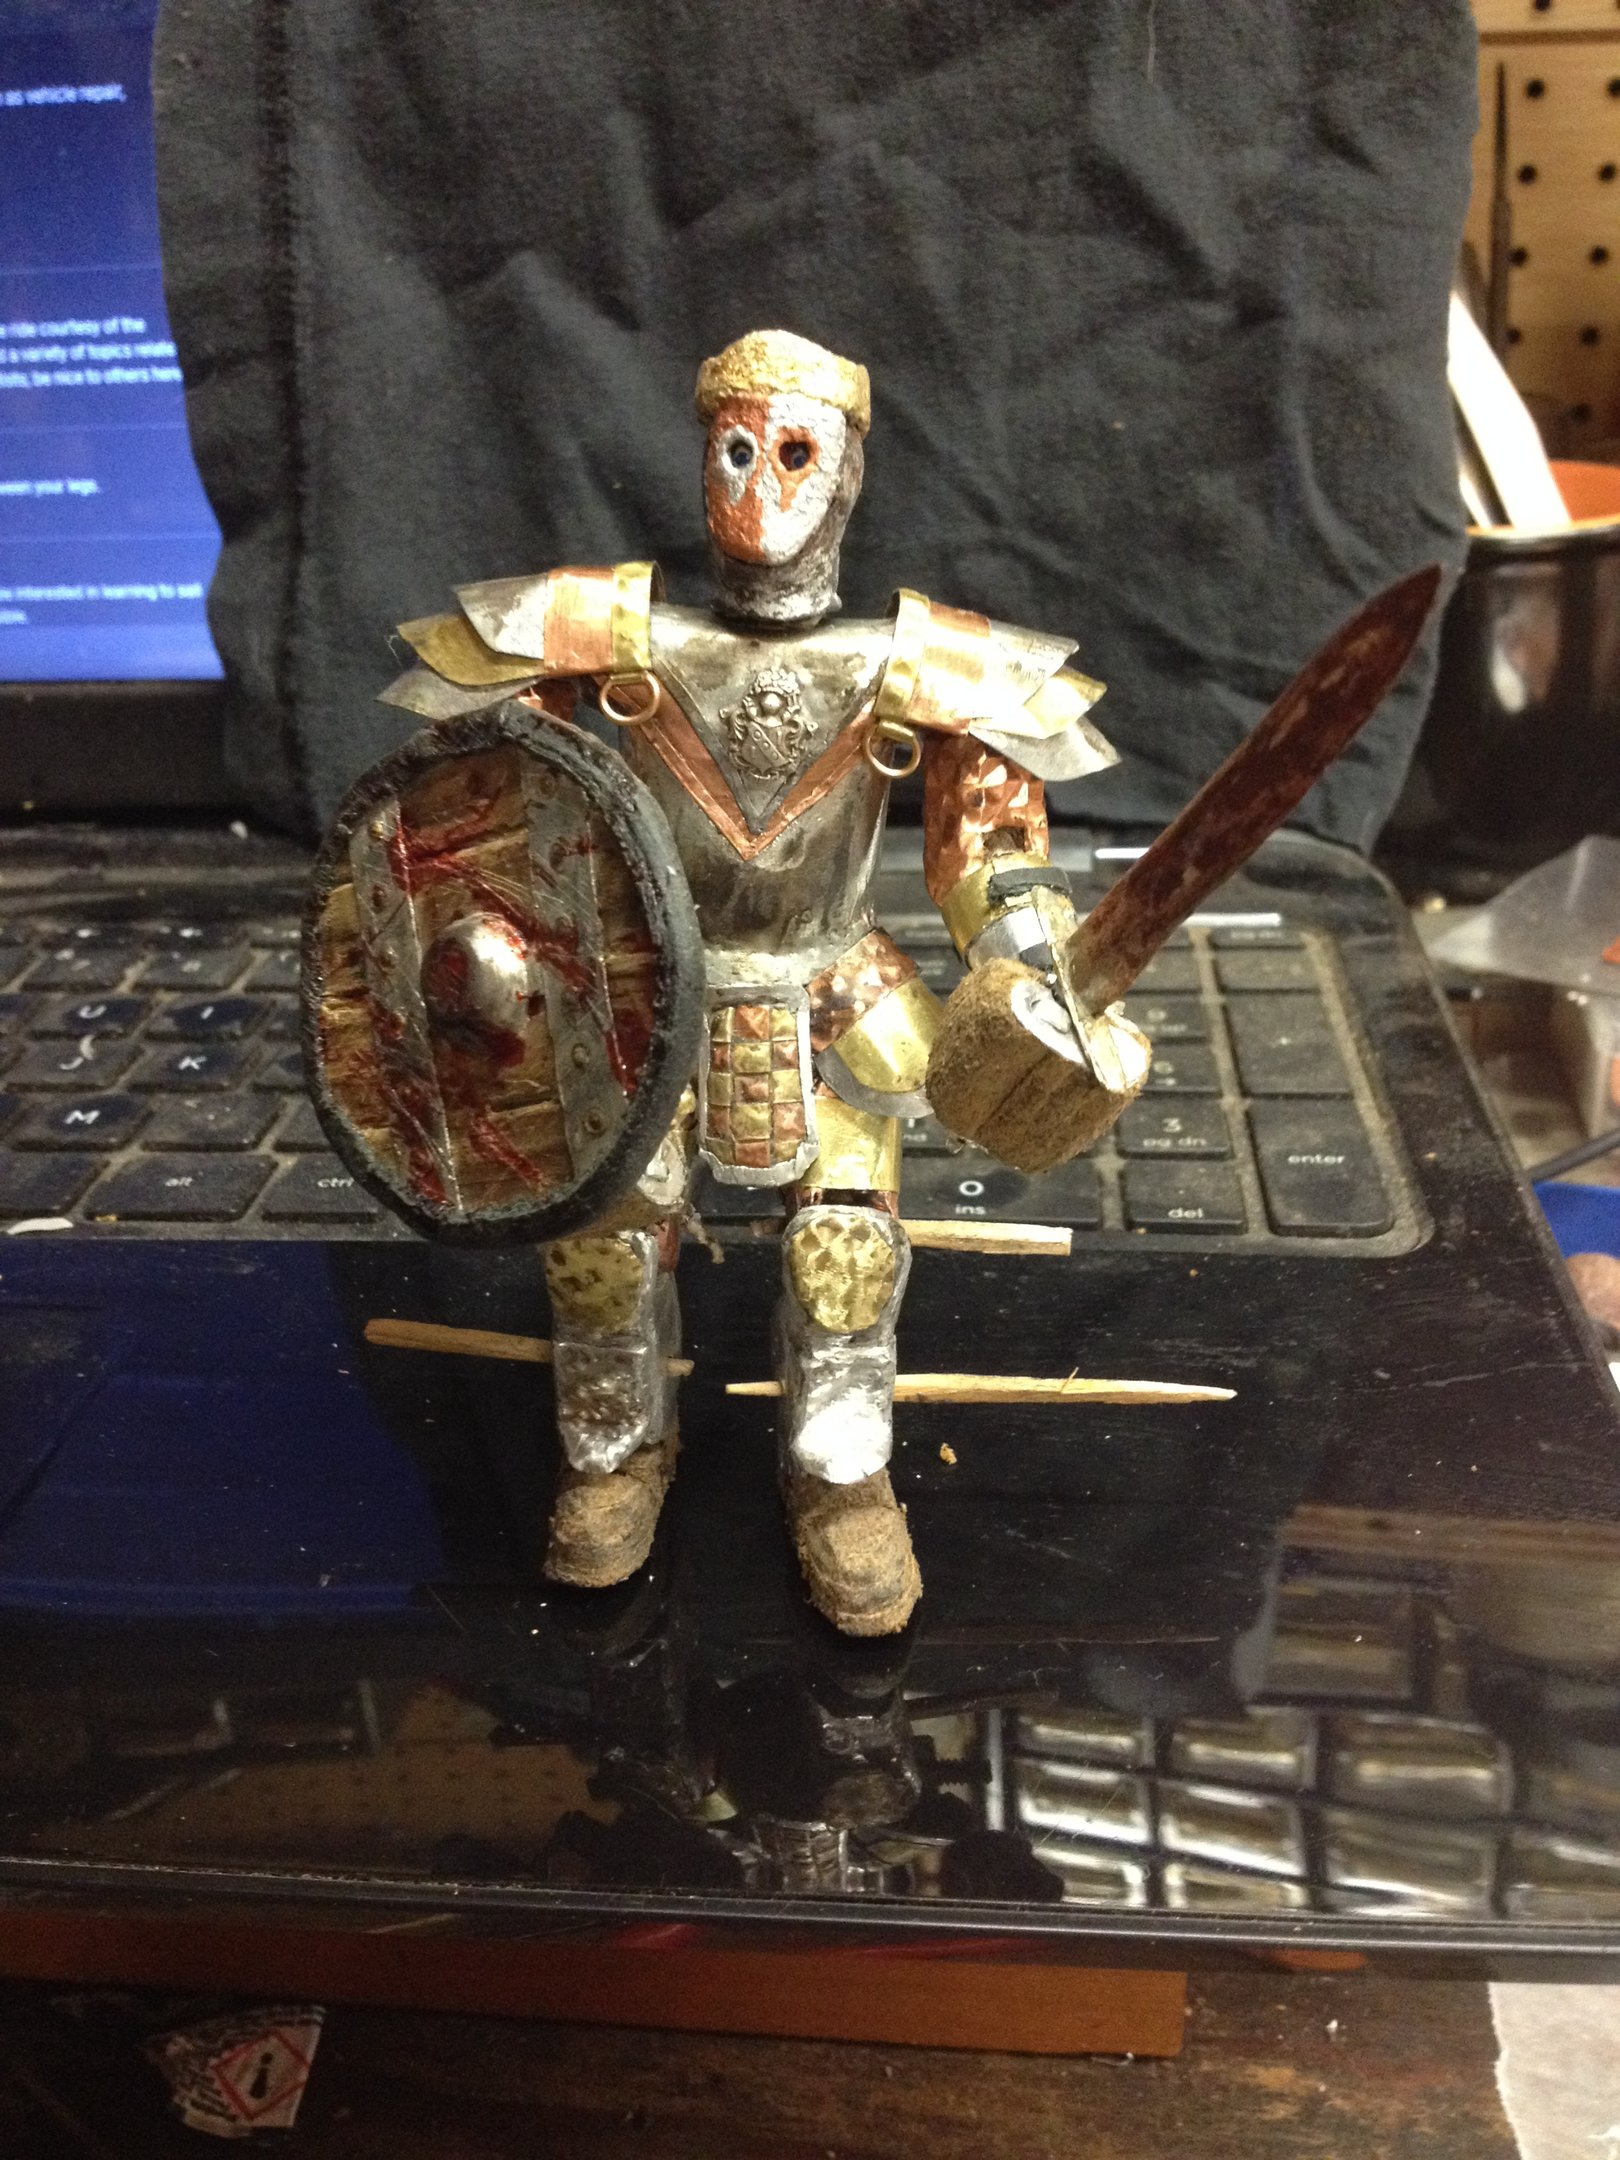 """img_0059-jpg.47143_The Faceless King (Bespoke 4"""" articulated action figure)_Art & Music_Squat the Planet_12:34 AM"""